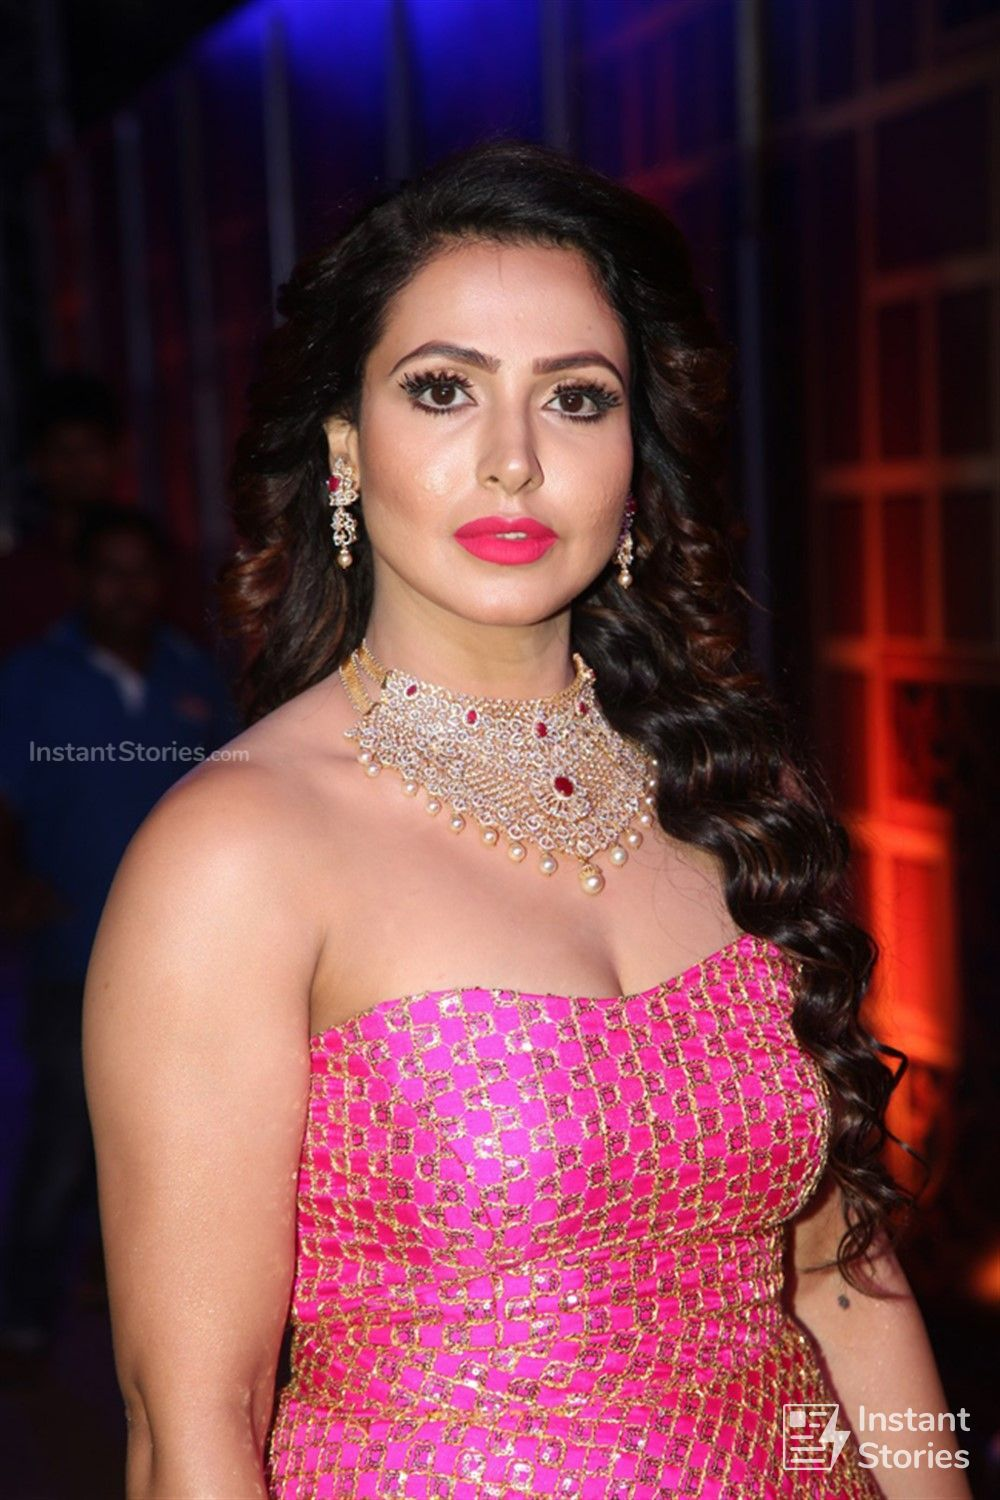 Actress Nandini Rai Photos at Zee Telugu Kutumbam Awards Event (16232) - Nandini Rai